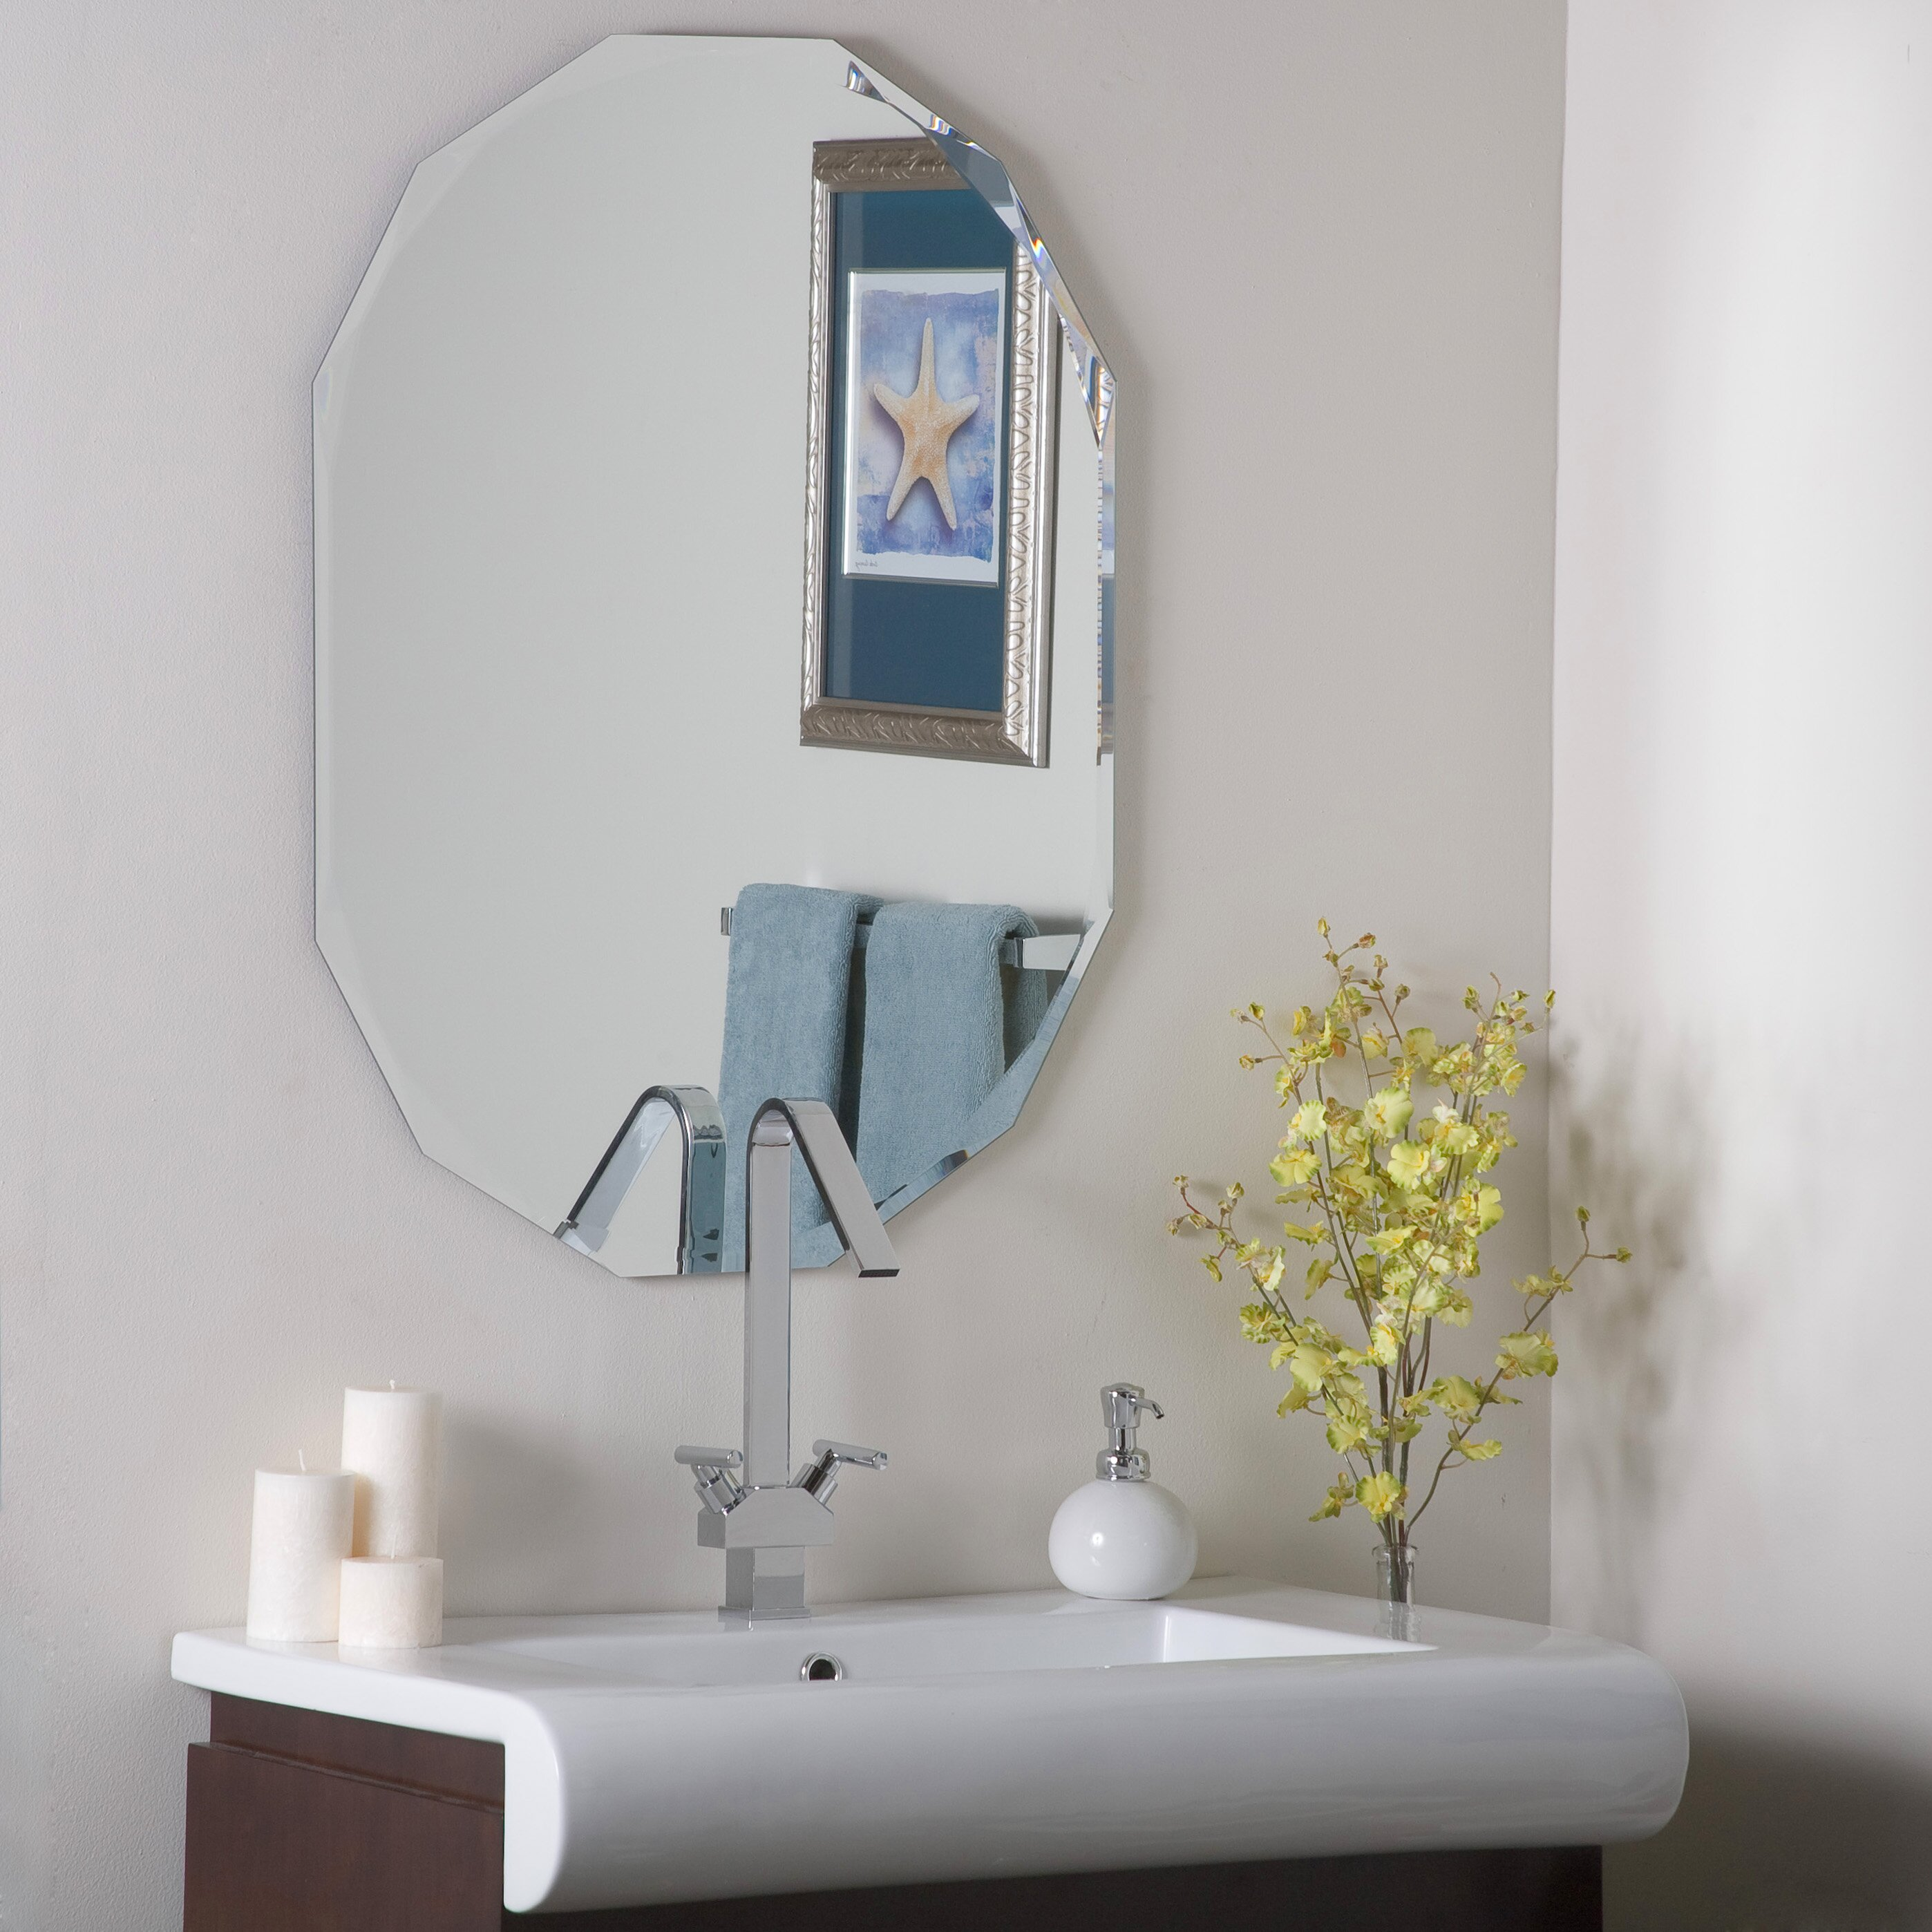 House of hampton frameless diamond wall mirror reviews for Frameless wall mirror